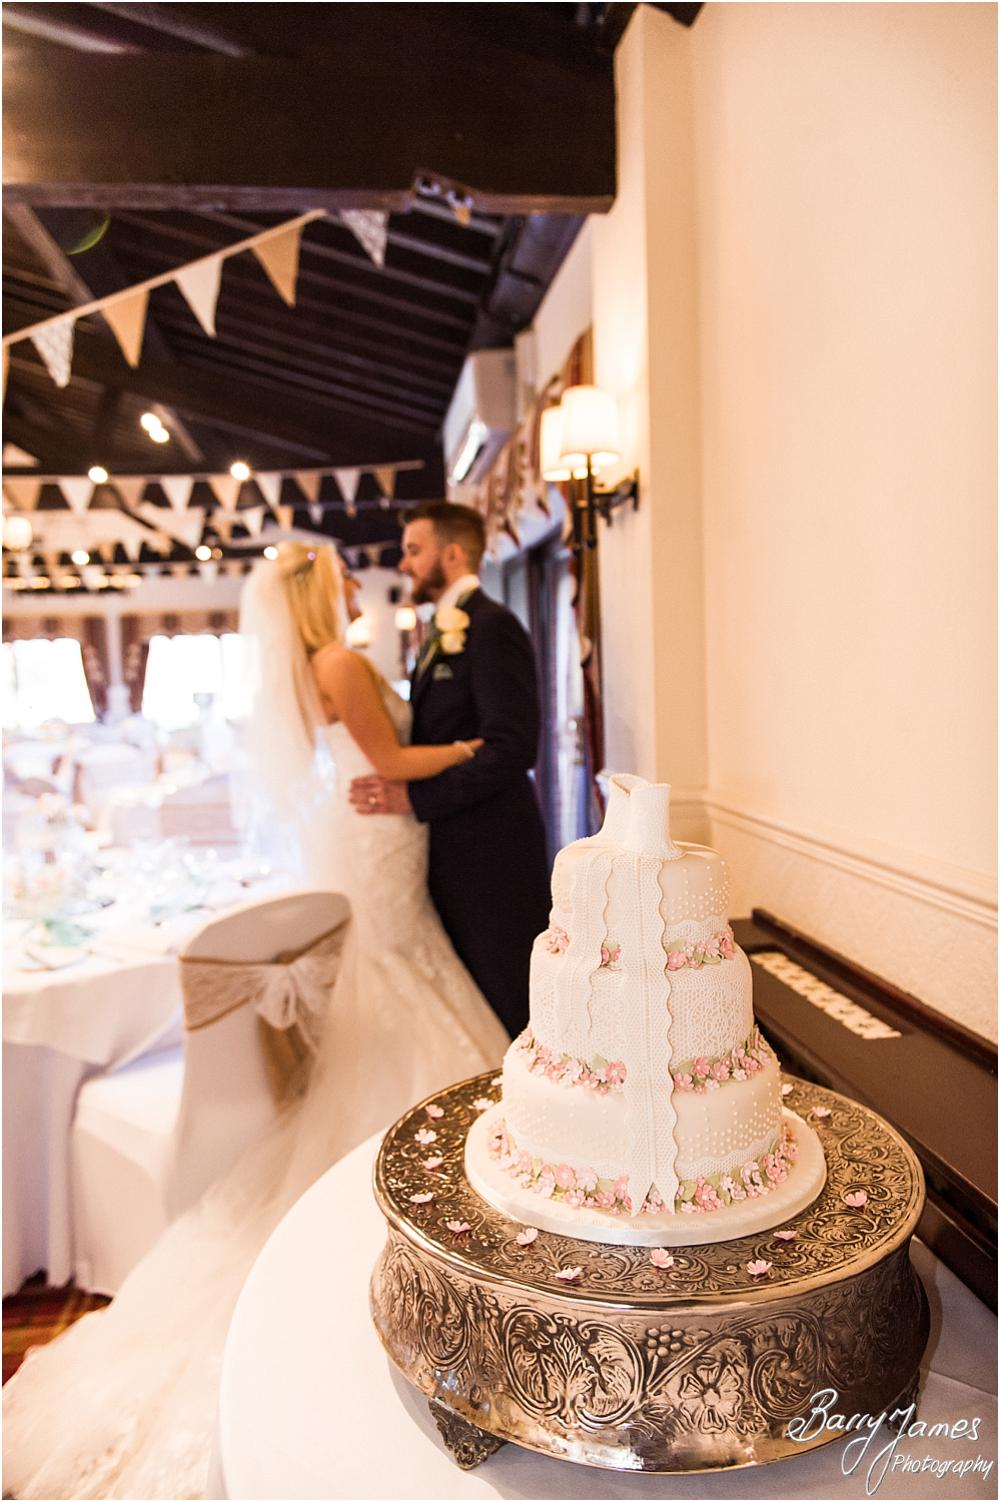 Beautiful wedding cake designed to match the theme of the wedding perfectly at Oak Farm Hotel in Cannock by CannockWedding Photographer Barry James